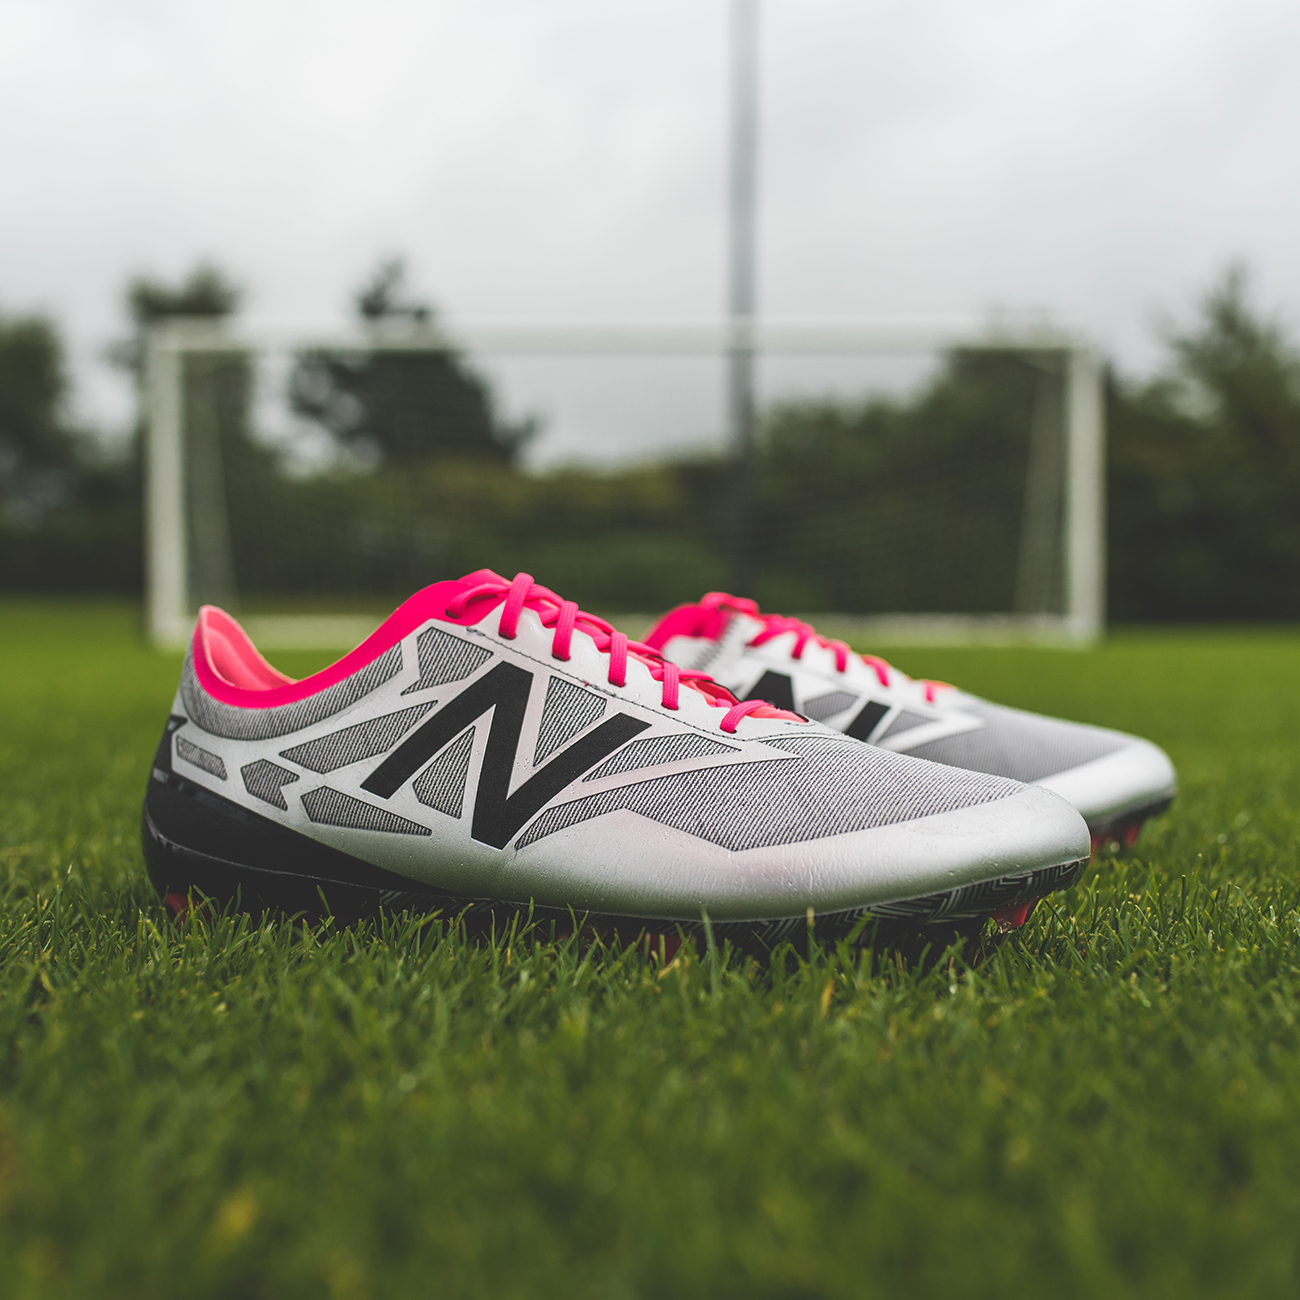 728bcd6bd NEW BALANCE FOOTBALL RELEASES LIMITED EDITION FURON 3.0 BOOTS